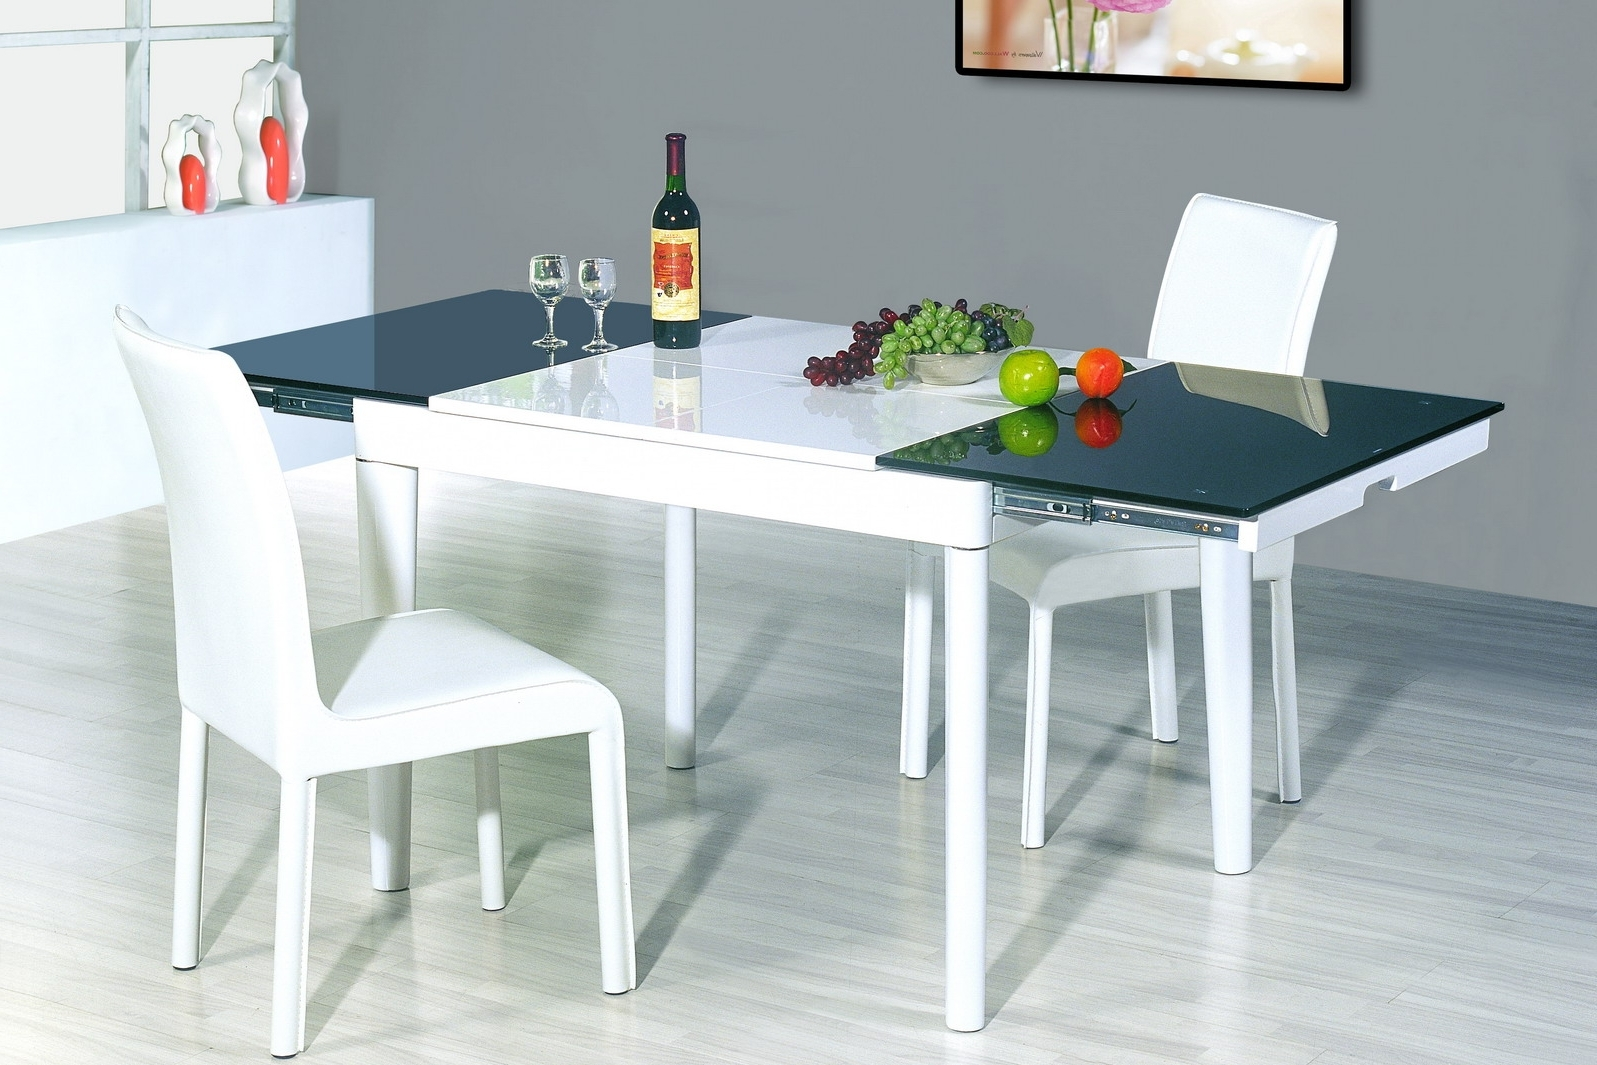 Fancy Futuristic Modern Kitchen Table Set With Expandable Top And inside Favorite Small Extendable Dining Table Sets